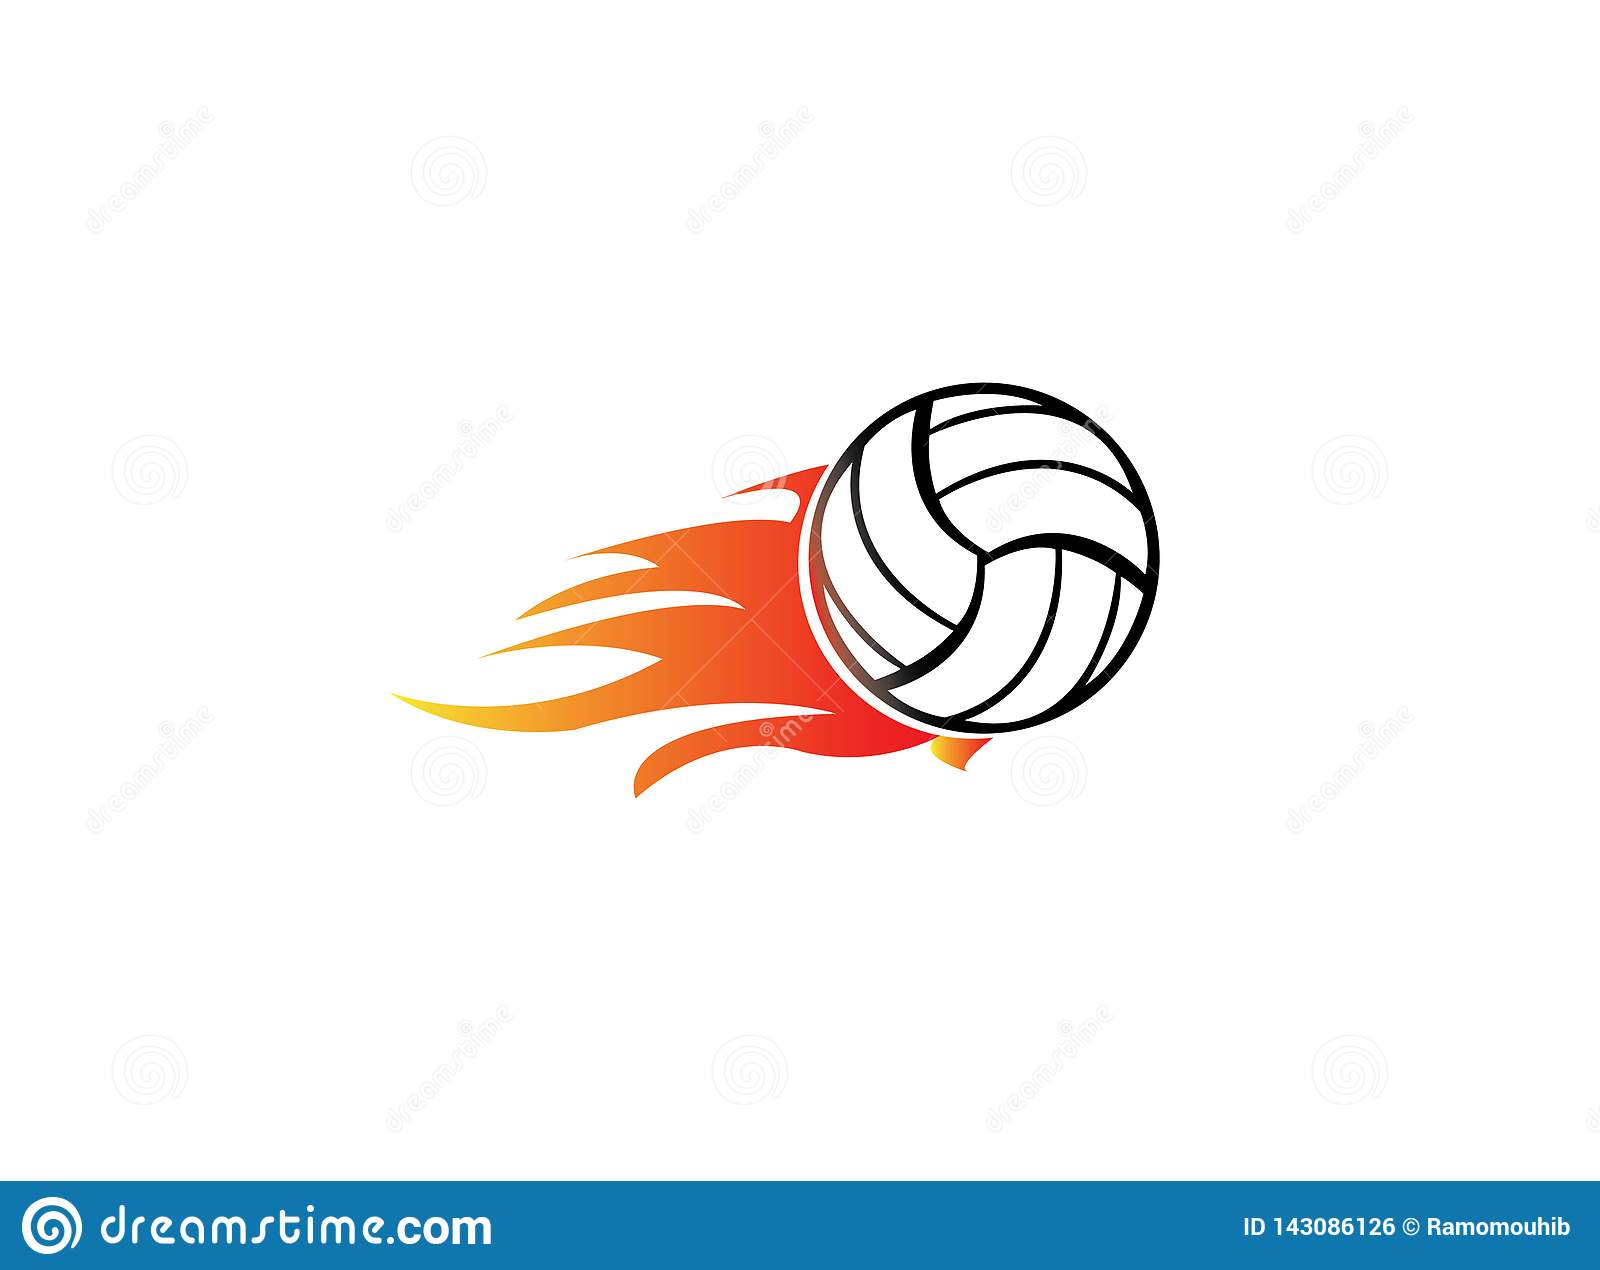 Volleyball With Fire And Flame For Logo Design Stock Illustration Illustration Of Flame Competition 143086126